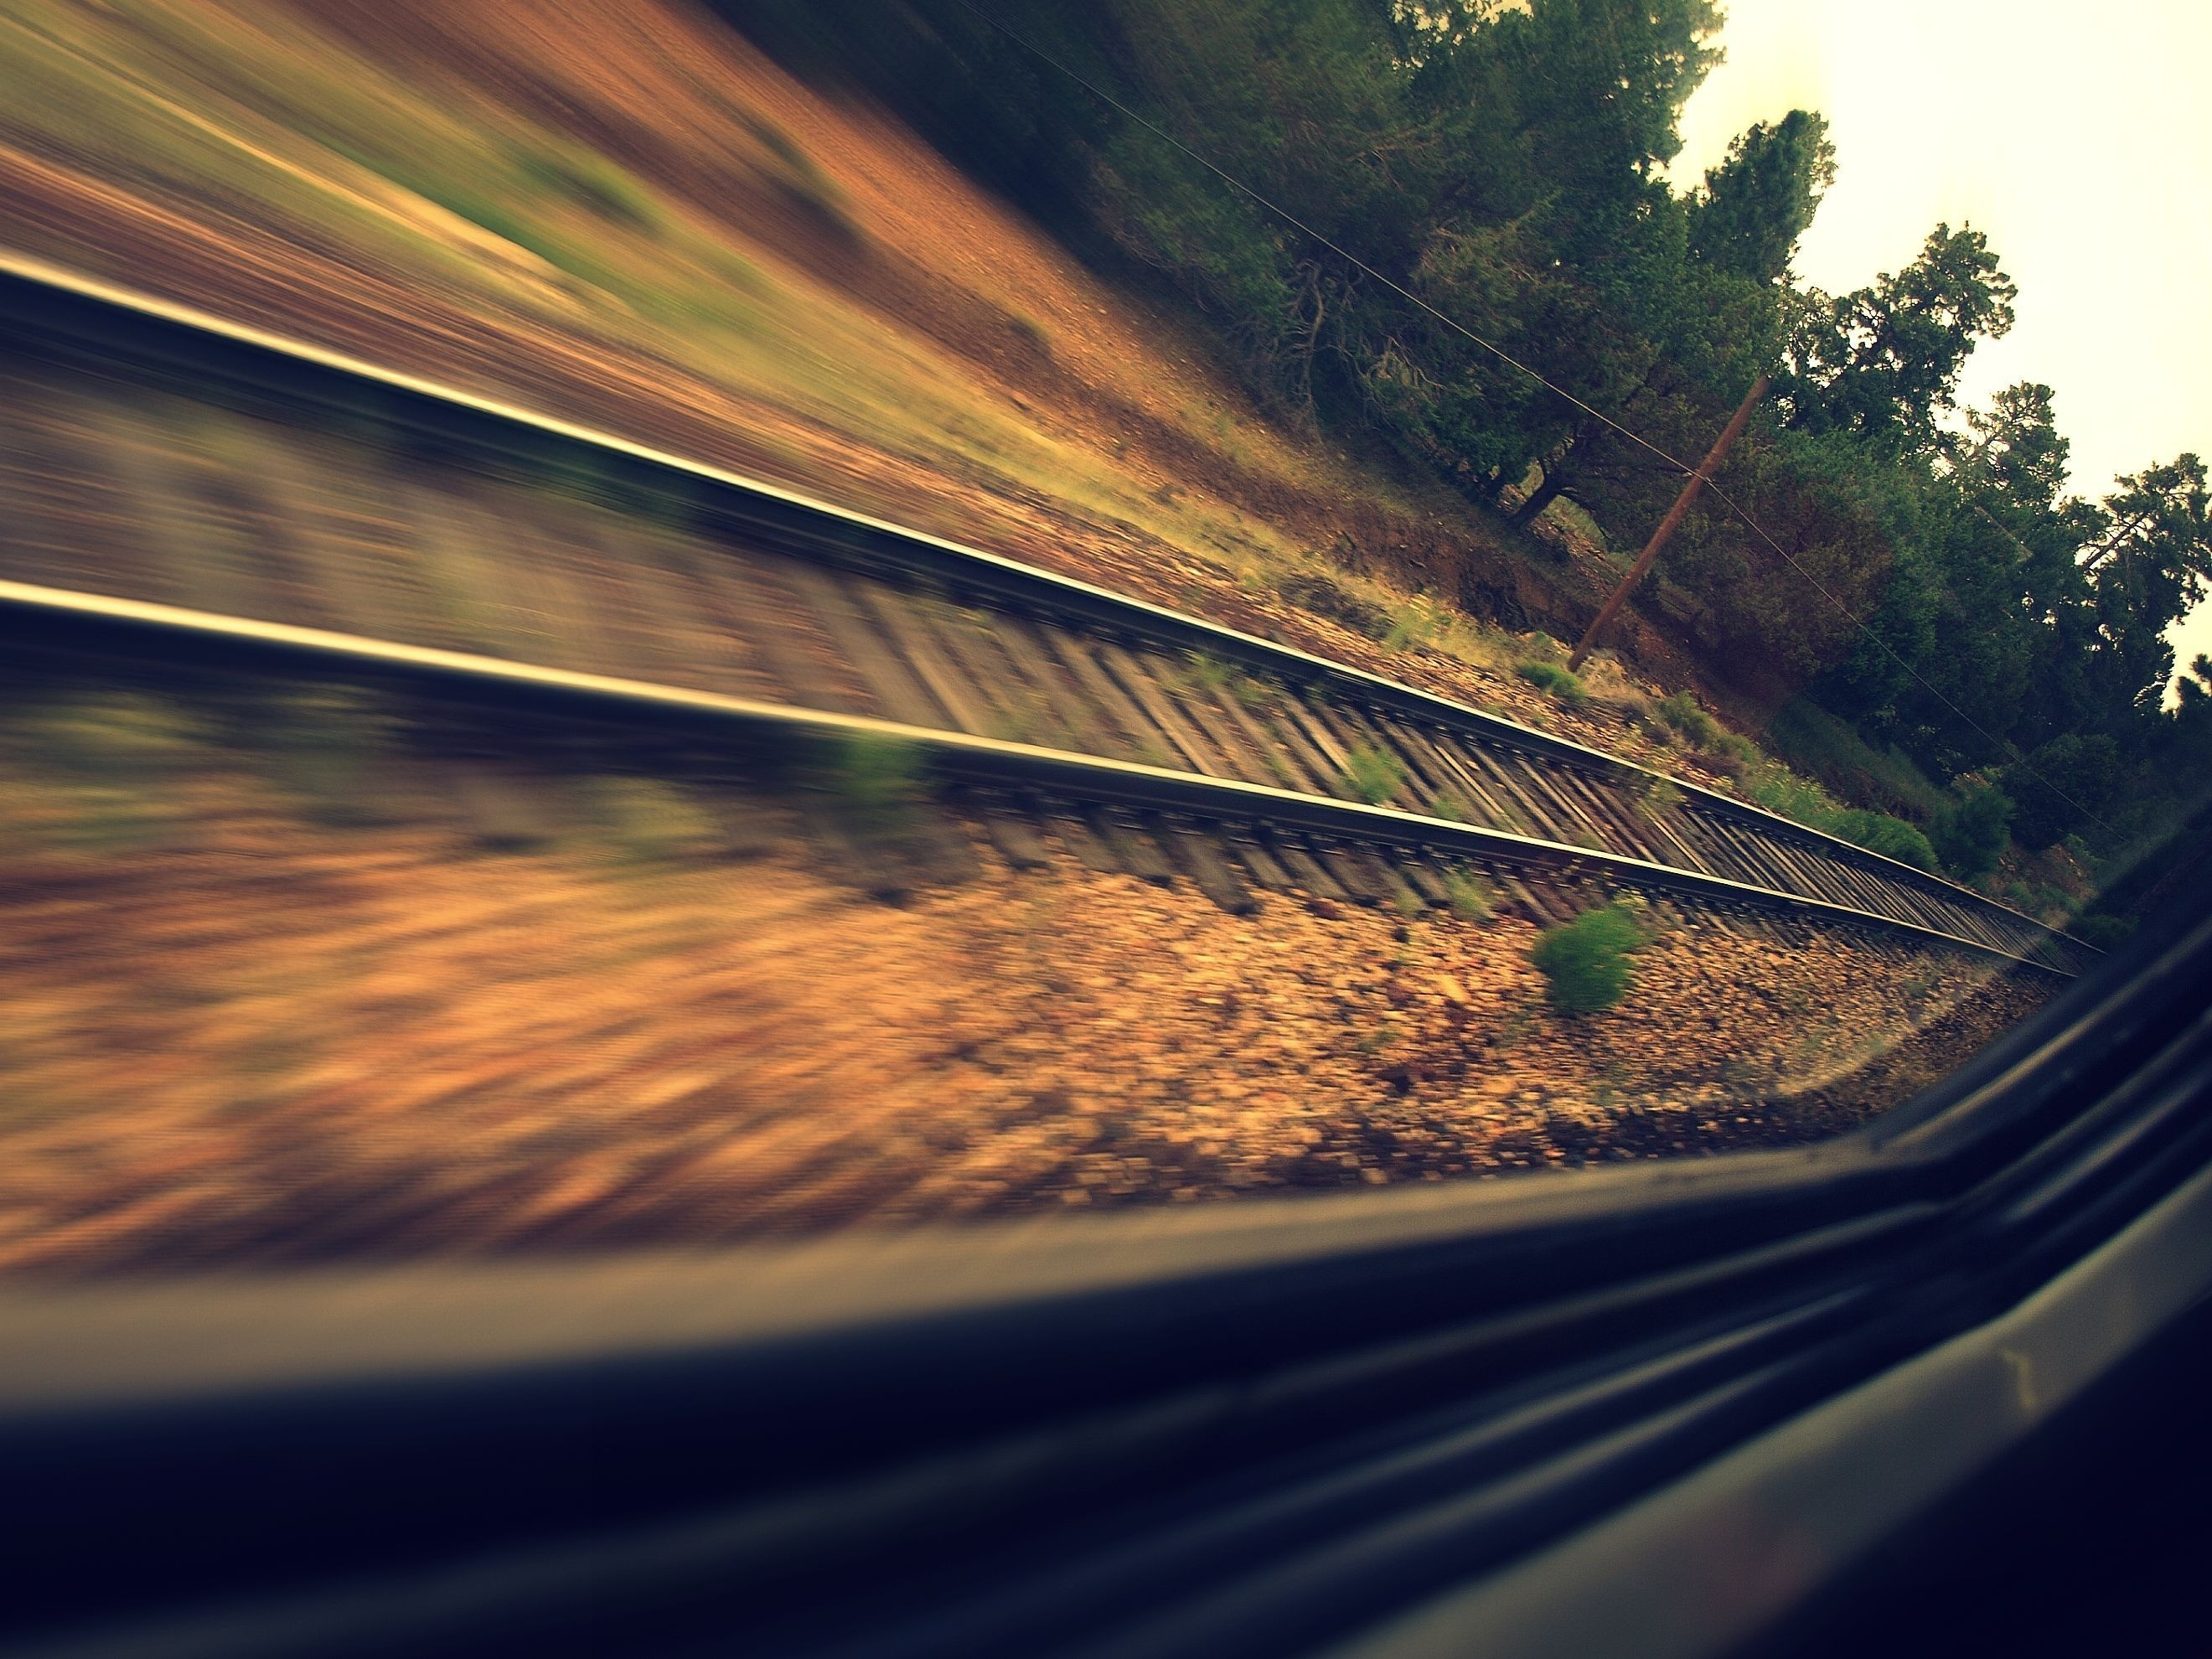 Trees trains railroad tracks HD Wallpaper